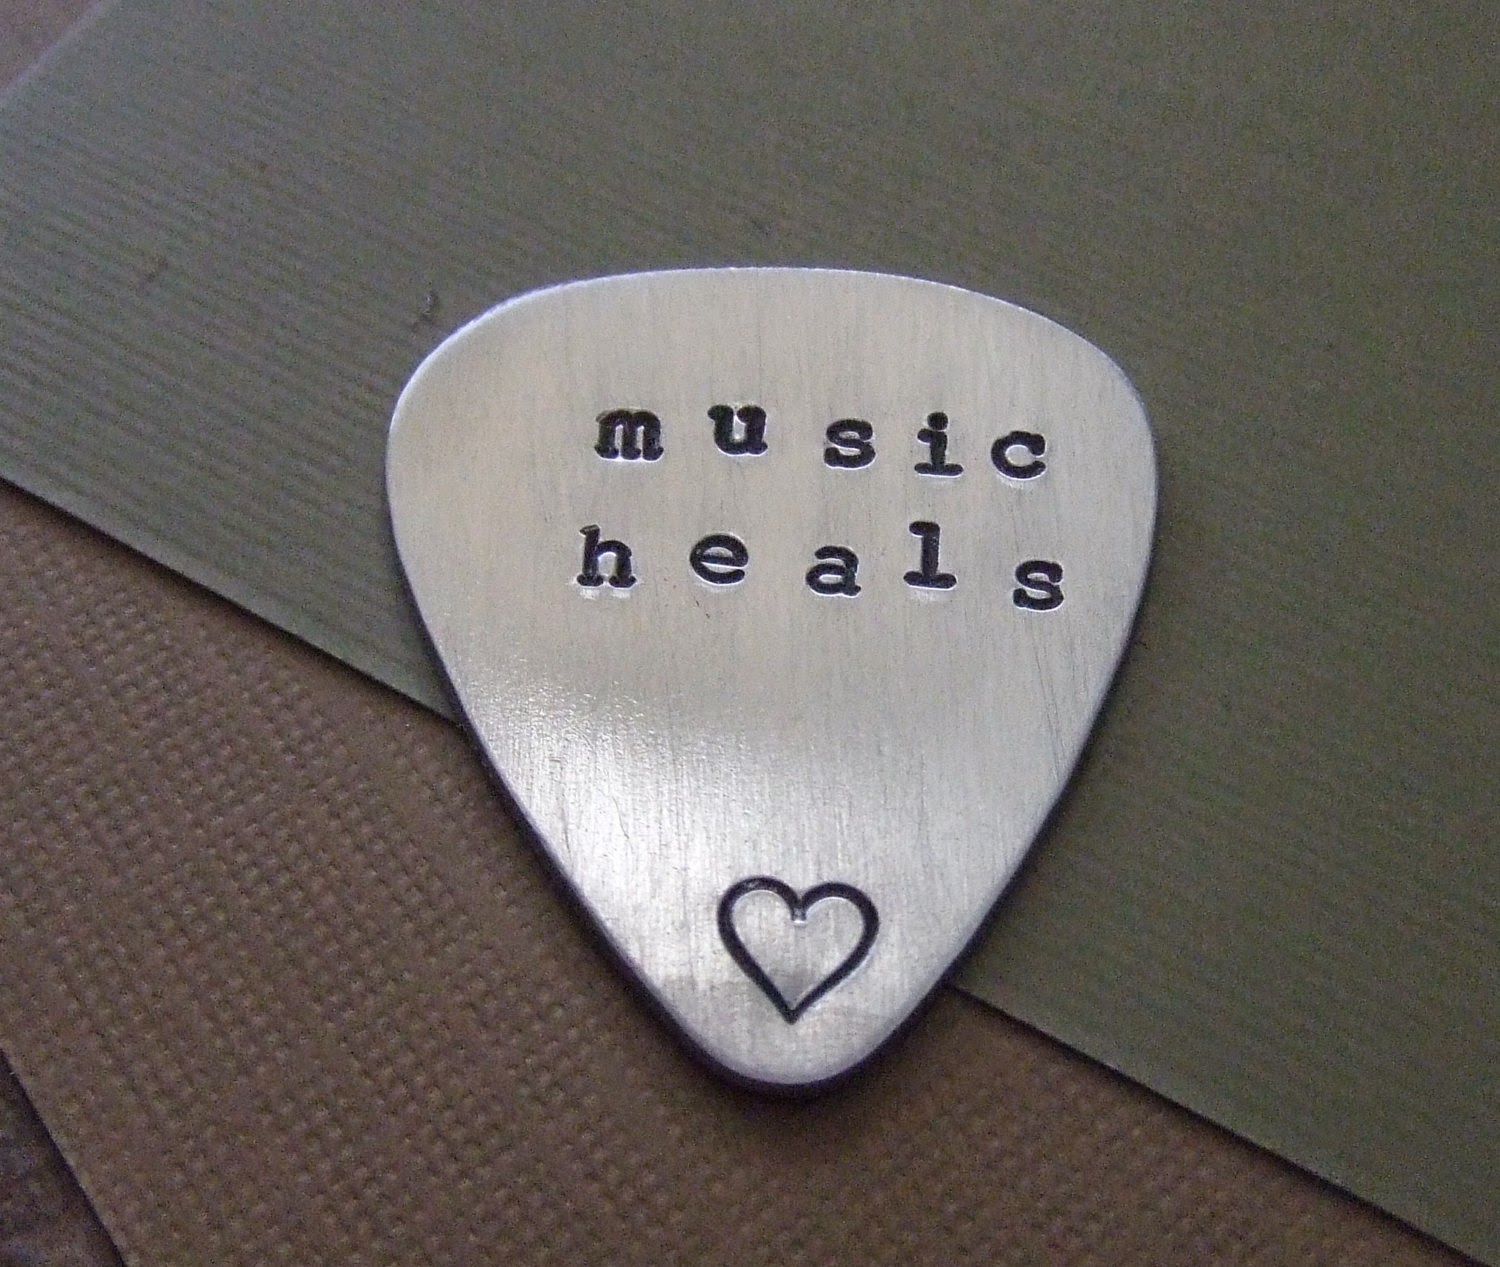 https://www.etsy.com/listing/162875996/personalized-guitar-pick-music-heals